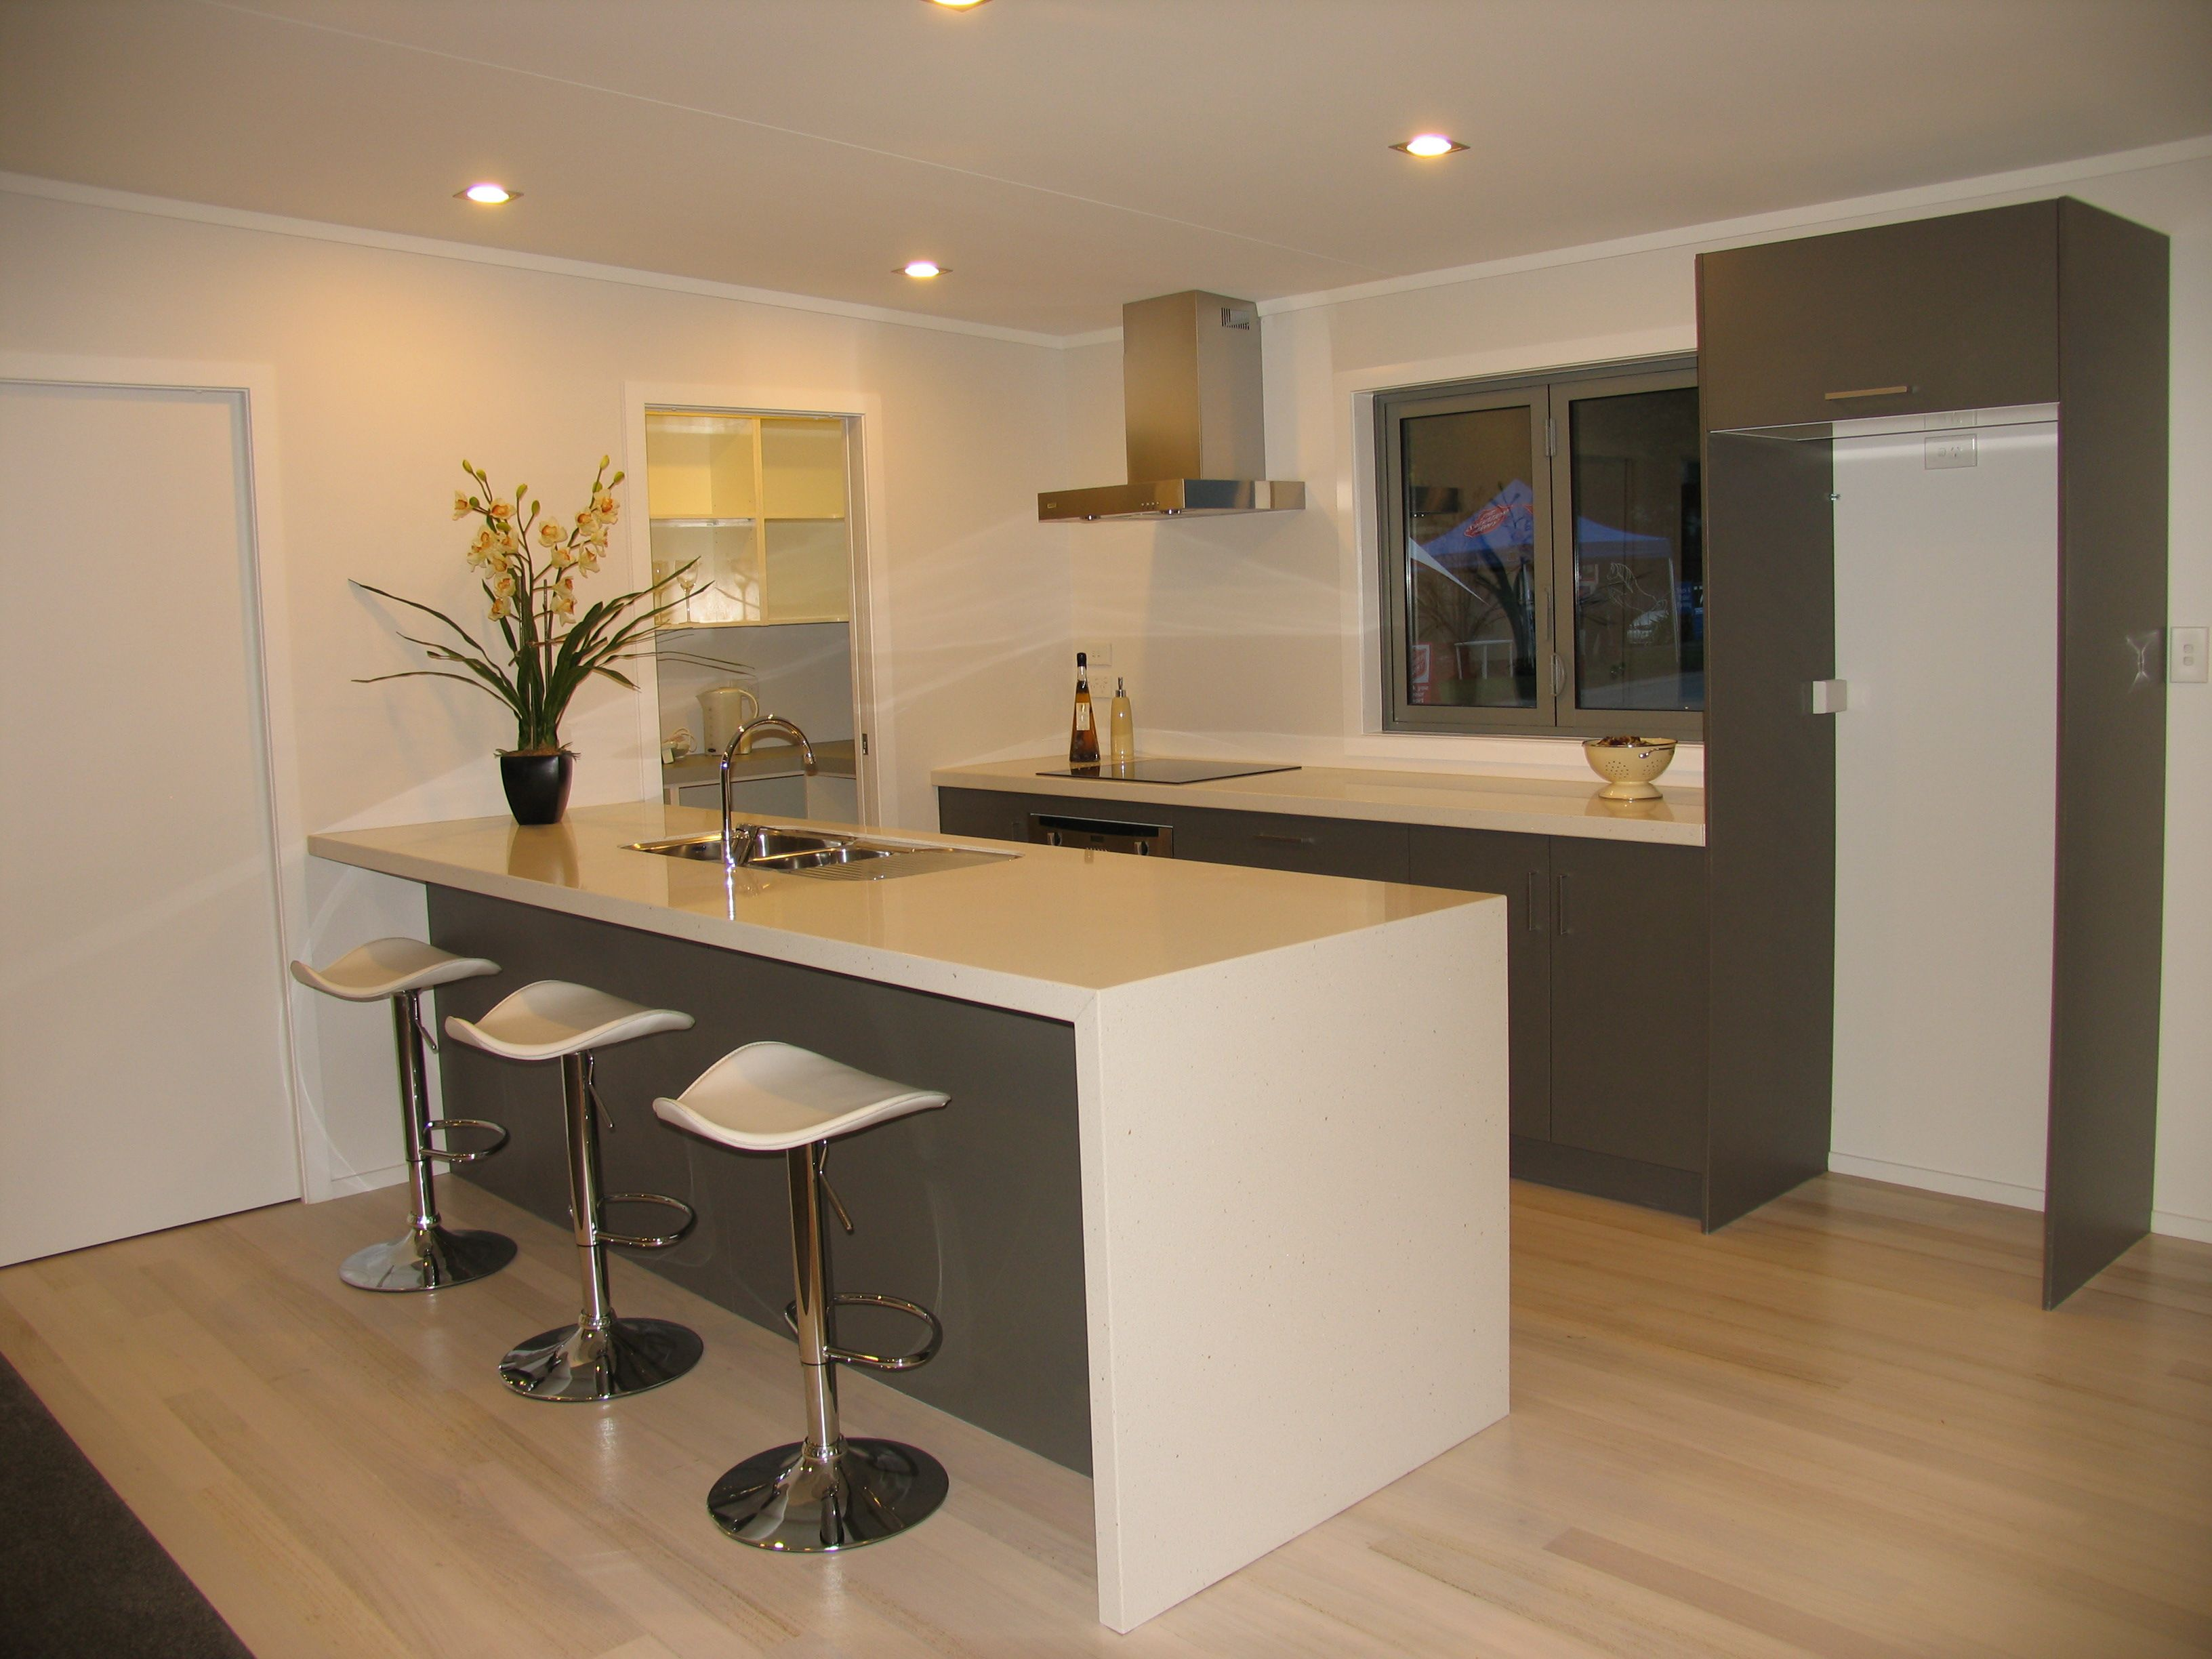 Are You Looking For A Home To Call Your Own Consider Leisurecom Transportable Design We Make Relocatable Prefab Homes In NZ